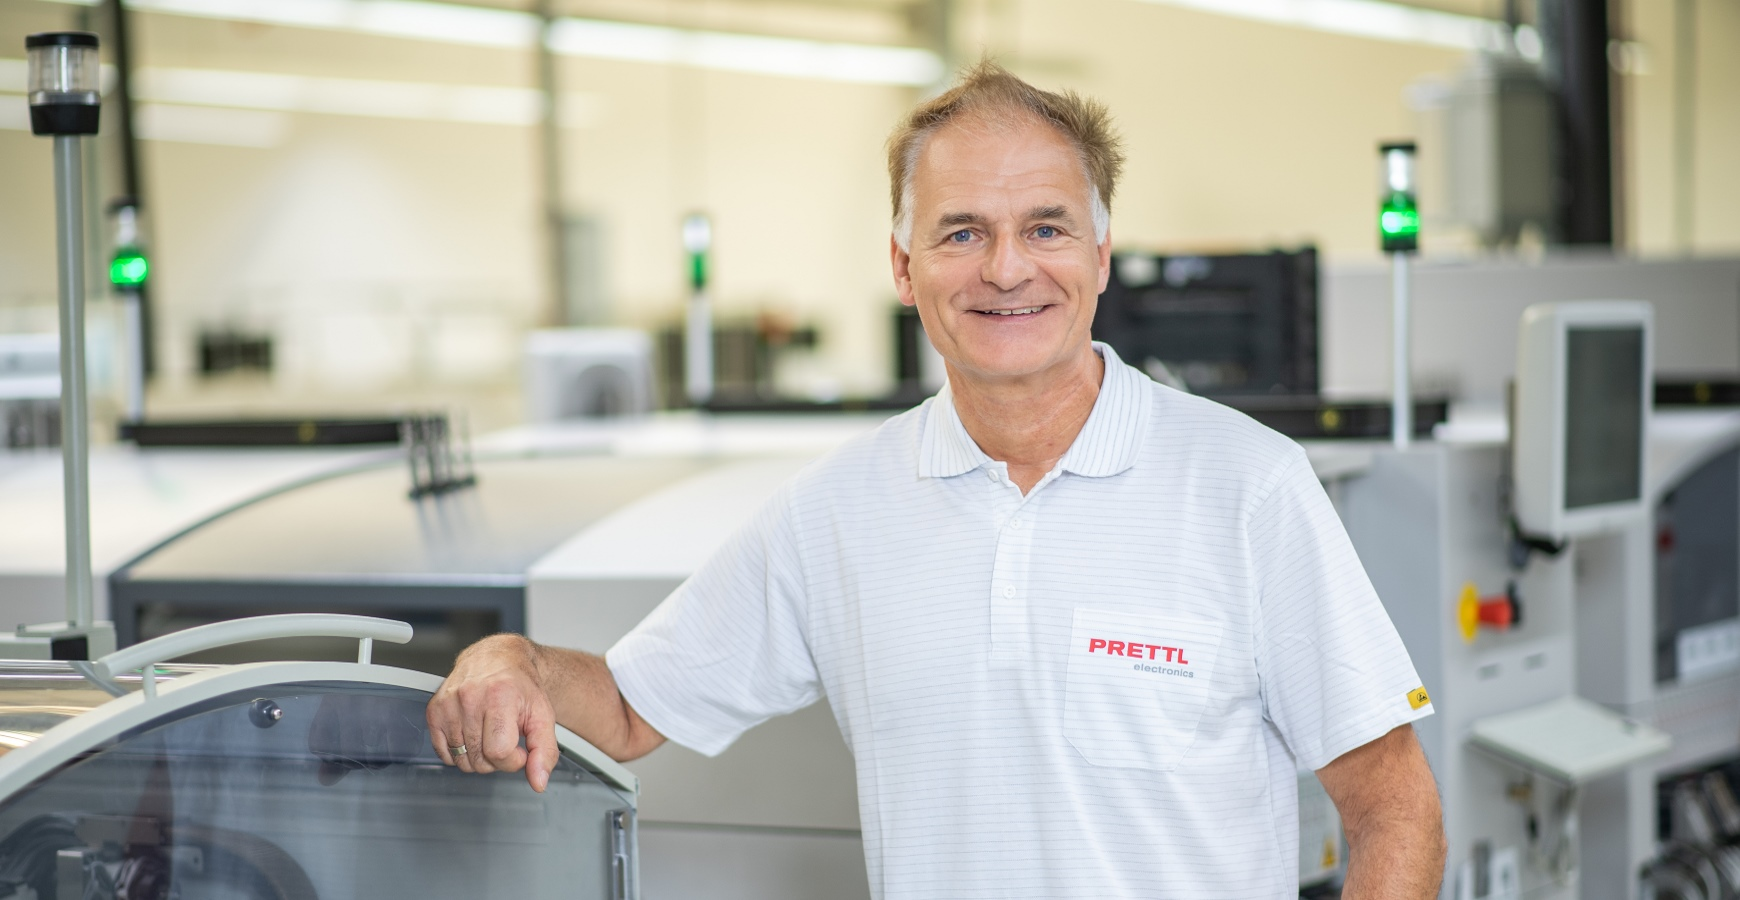 PRETTL electronics, Musterbau, Teamleiter